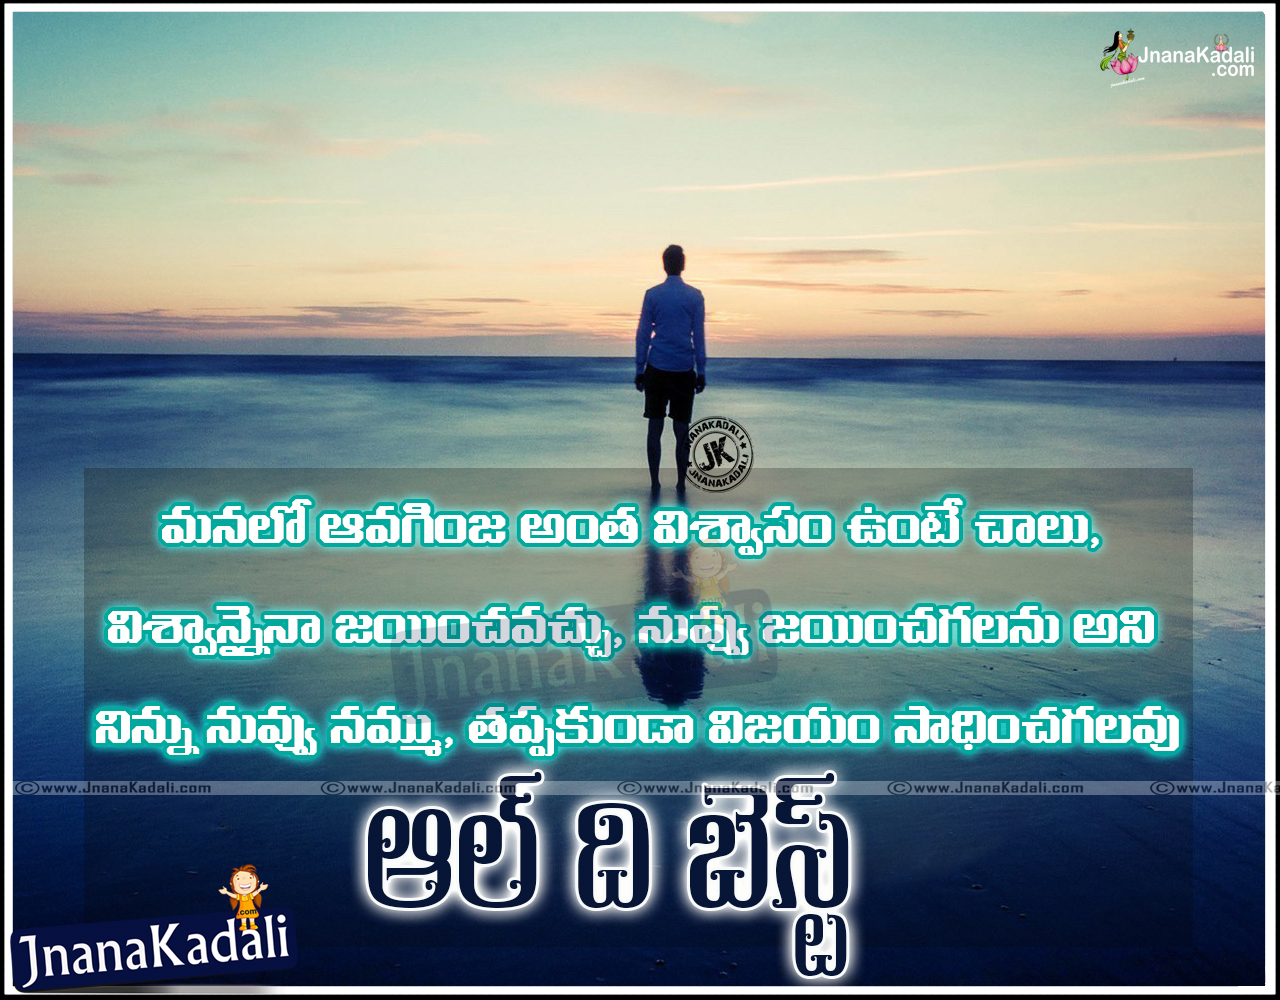 All the best for success inspiring quotes sms messages greetings inaprirational telugu language all the best images and messages most popular telugu language all the kristyandbryce Images